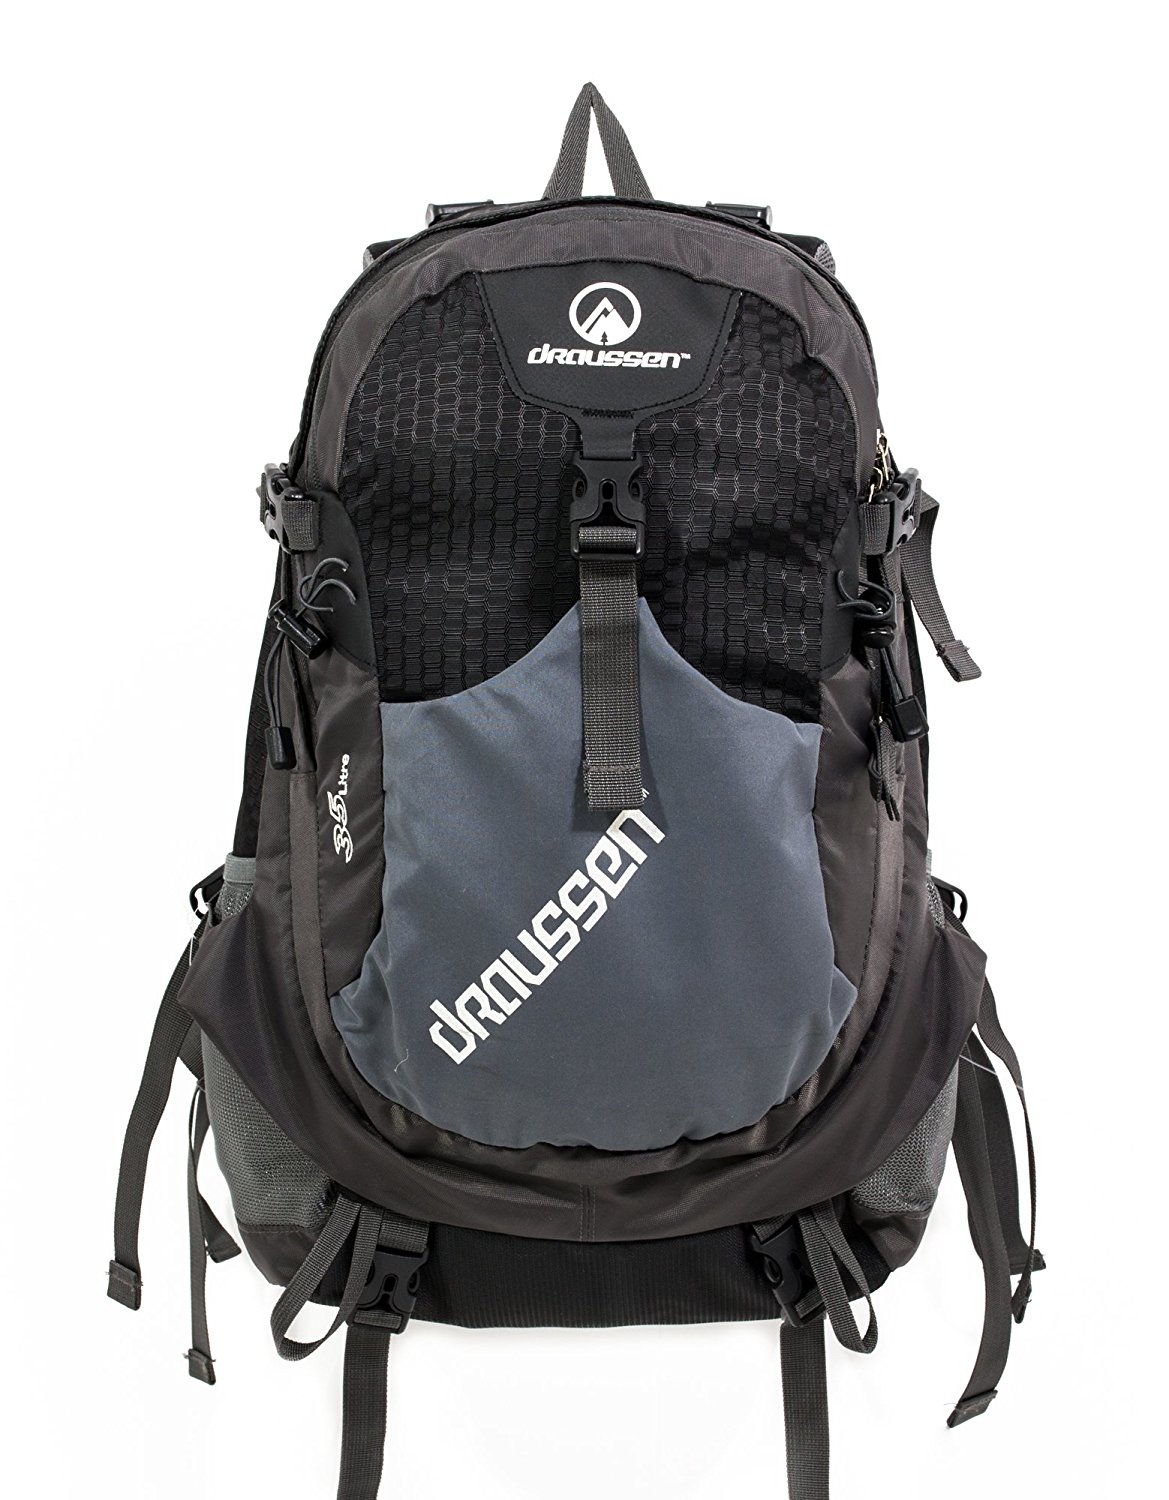 dde533ae3f Get Quotations · Hiking Backpack; Draussen Internal Frame Hiking Backpack  for Hiking; 35 Liter; Great Lightweight